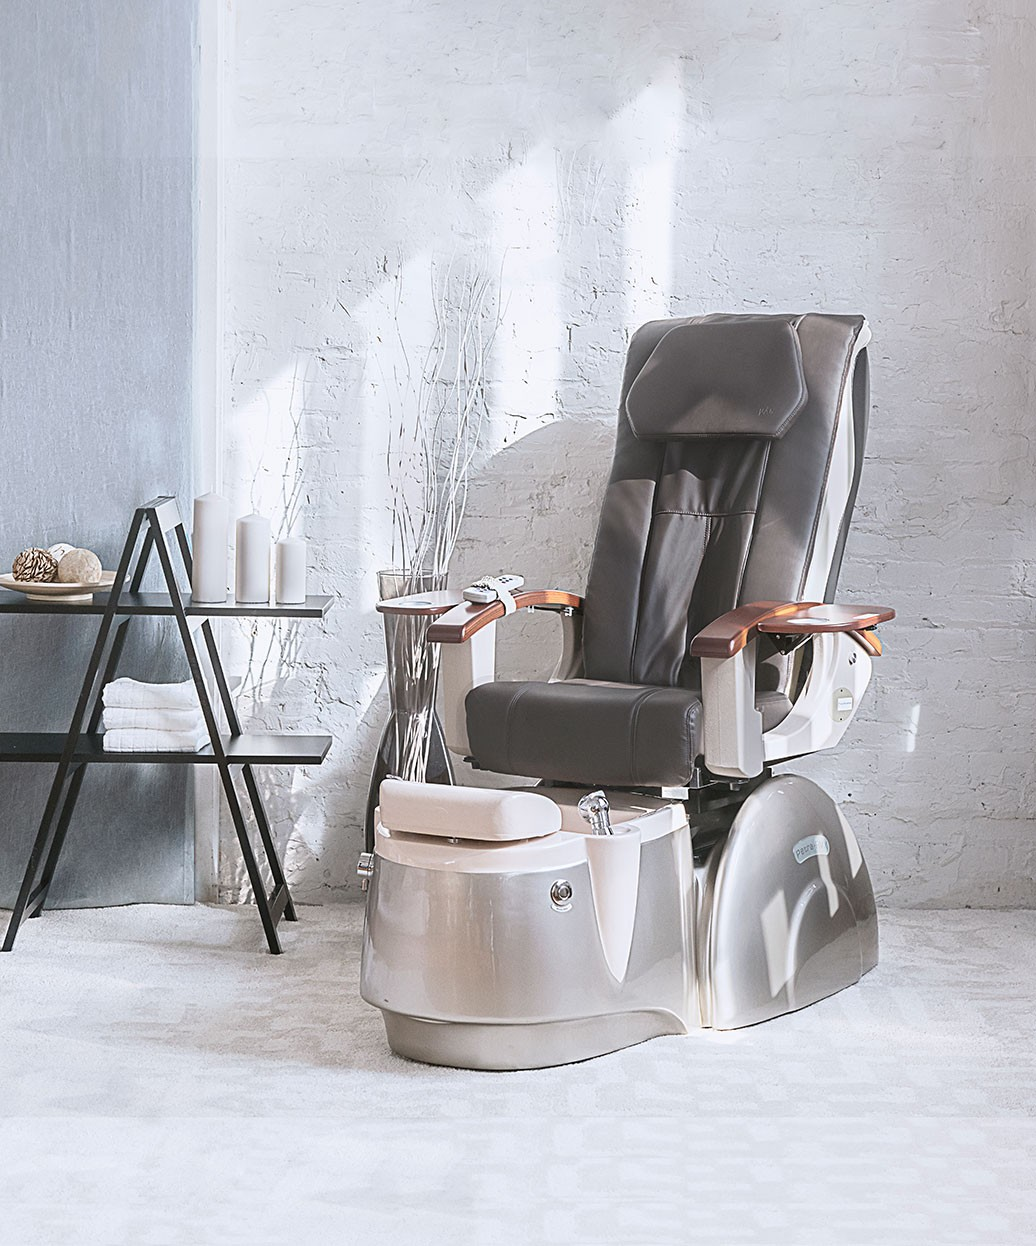 J&A Petra RMX Pedicure Spa